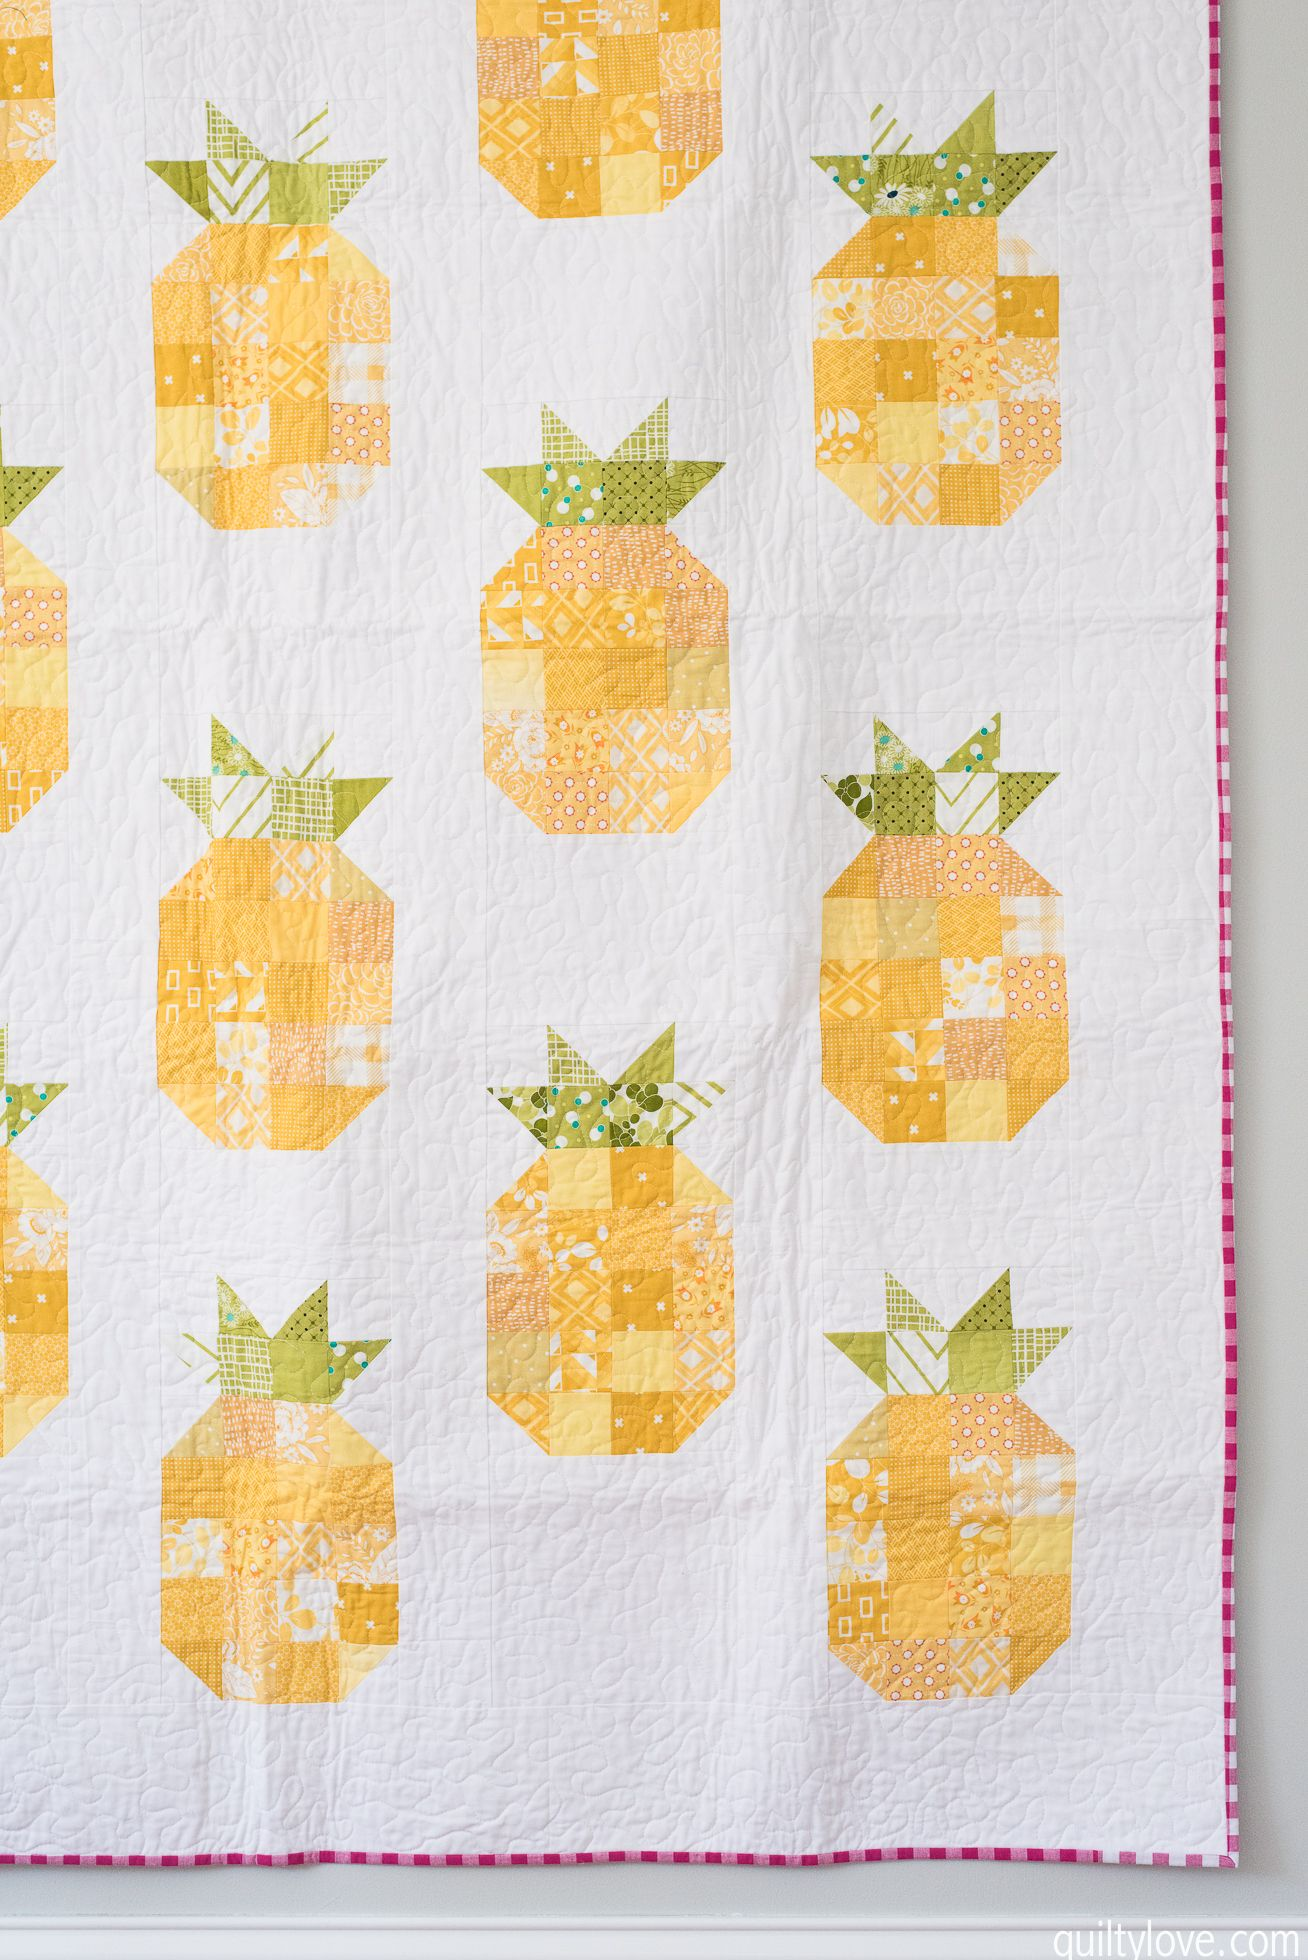 The Pineapple Quilt | Hobbies | Pinterest | Colchas, Patchwork and Telas